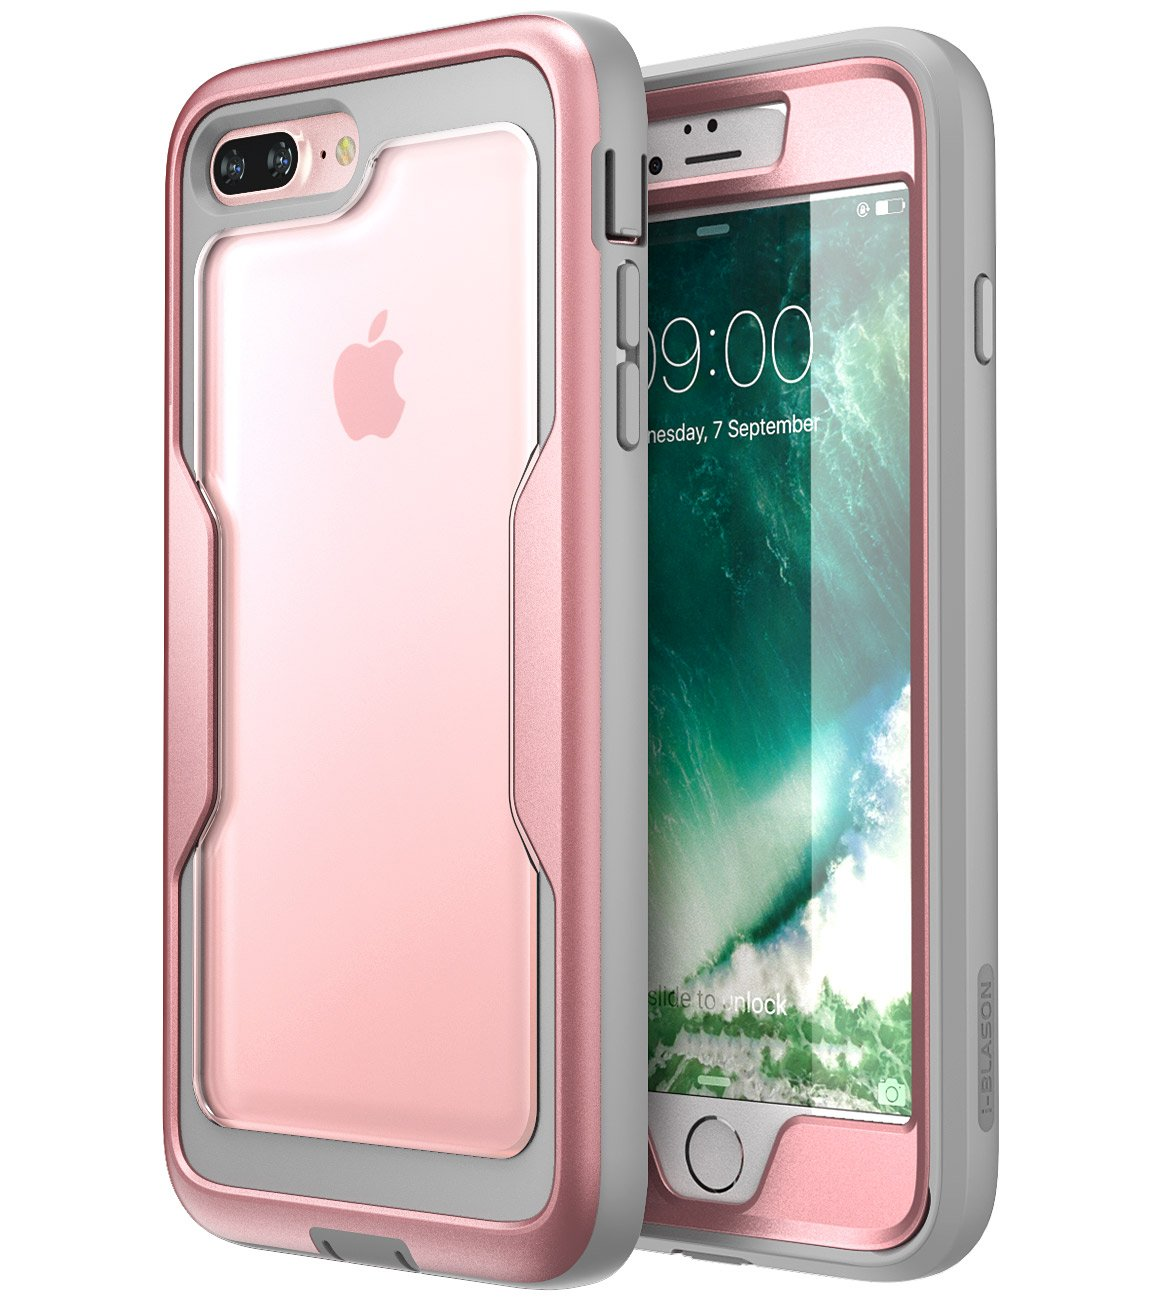 iPhone 8 Plus Case, iPhone 7 Plus case, i-Blason [Heavy Duty Protection] [Magma Series] Shock Reduction/Full body Bumper Case with Built-in Screen Protector for iPhone 8 Plus 2017 (Pink) by i-Blason (Image #1)